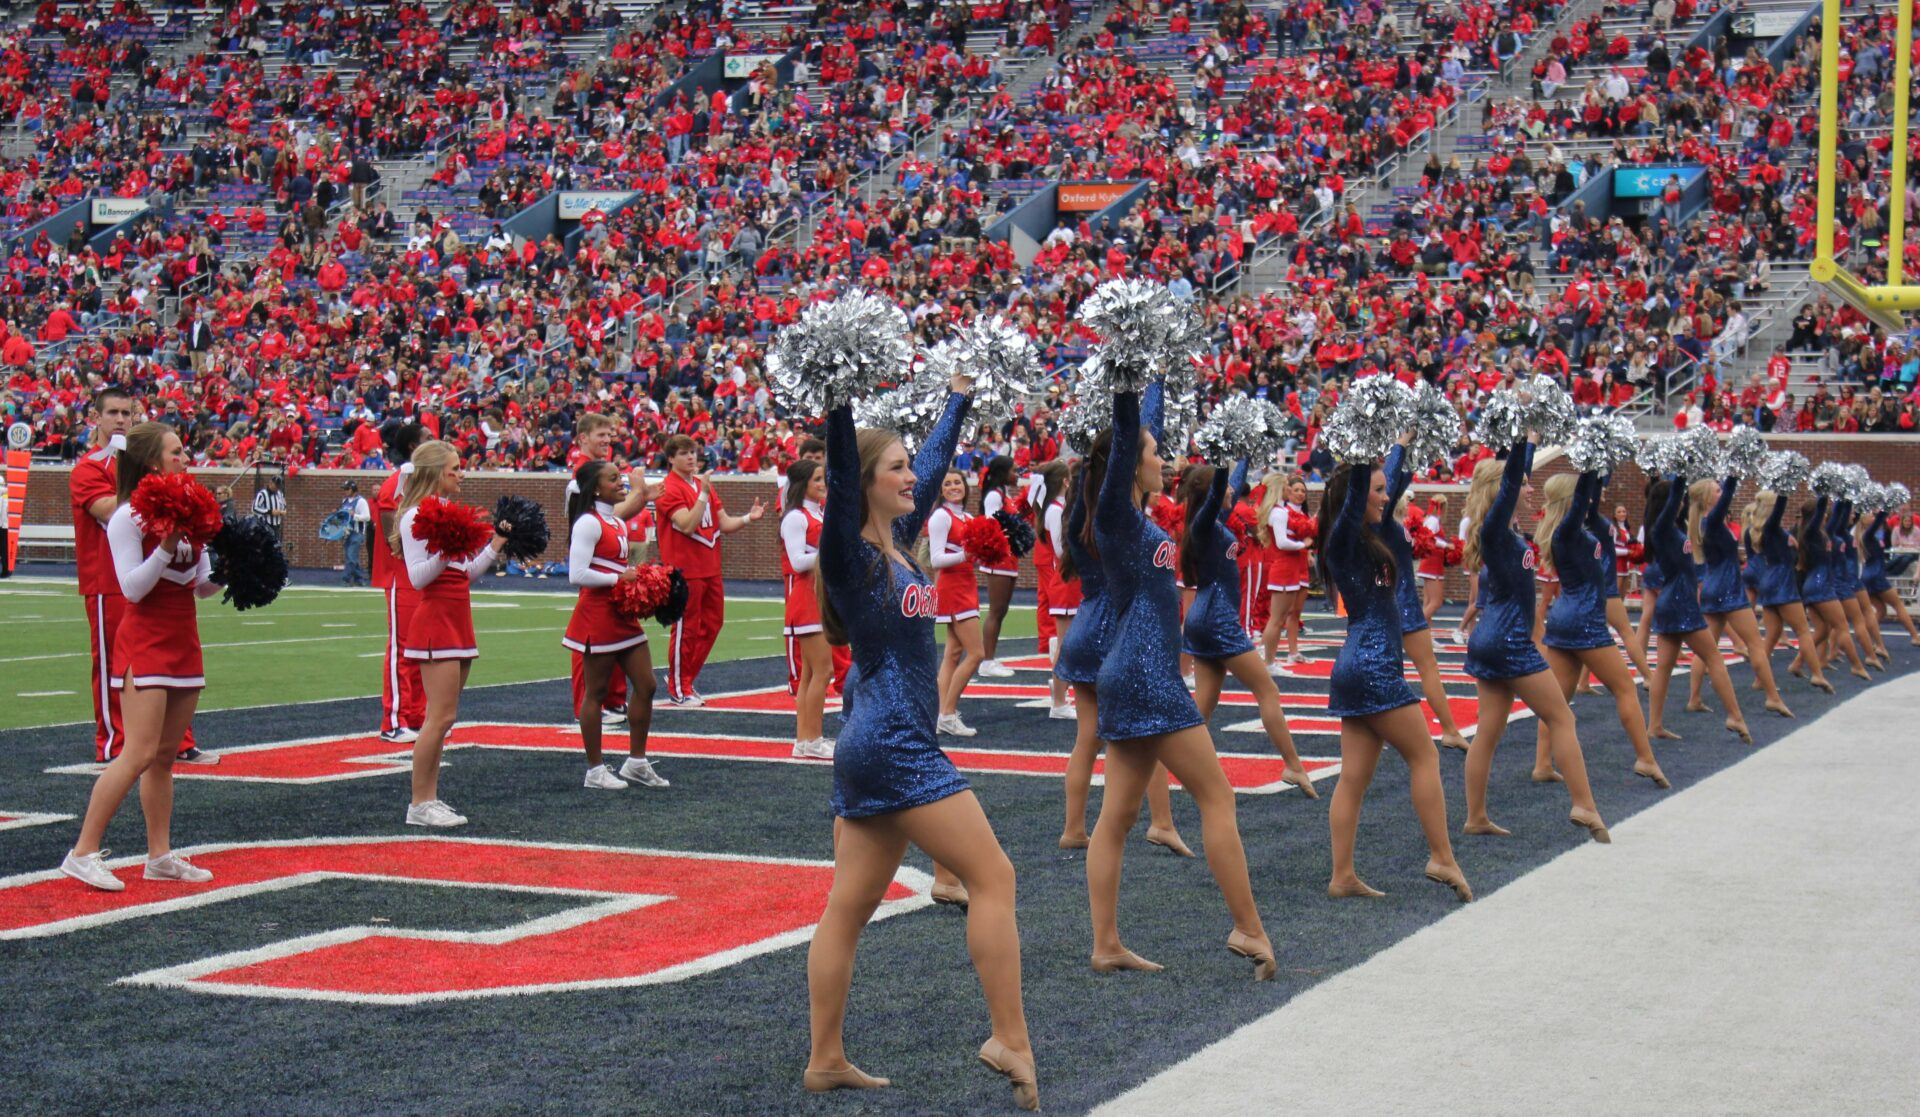 Sights Of The Game Ole Miss Rebels Match Against